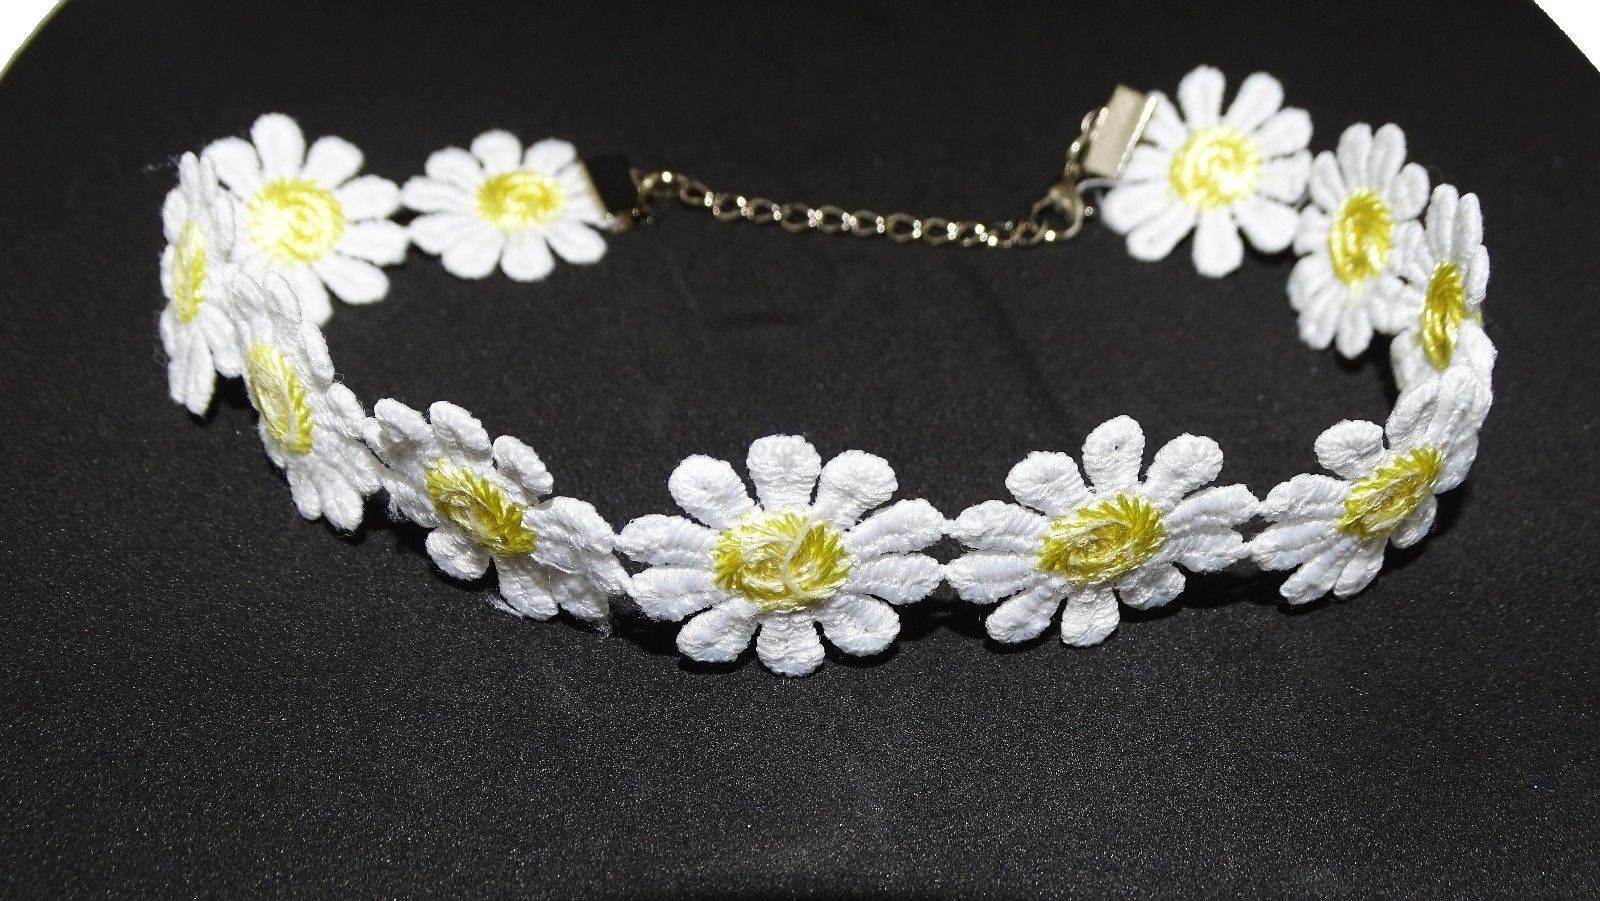 Vintage Sexy Daisy Flower Choker Necklaces Yellow White Charm Retro Choker Gift